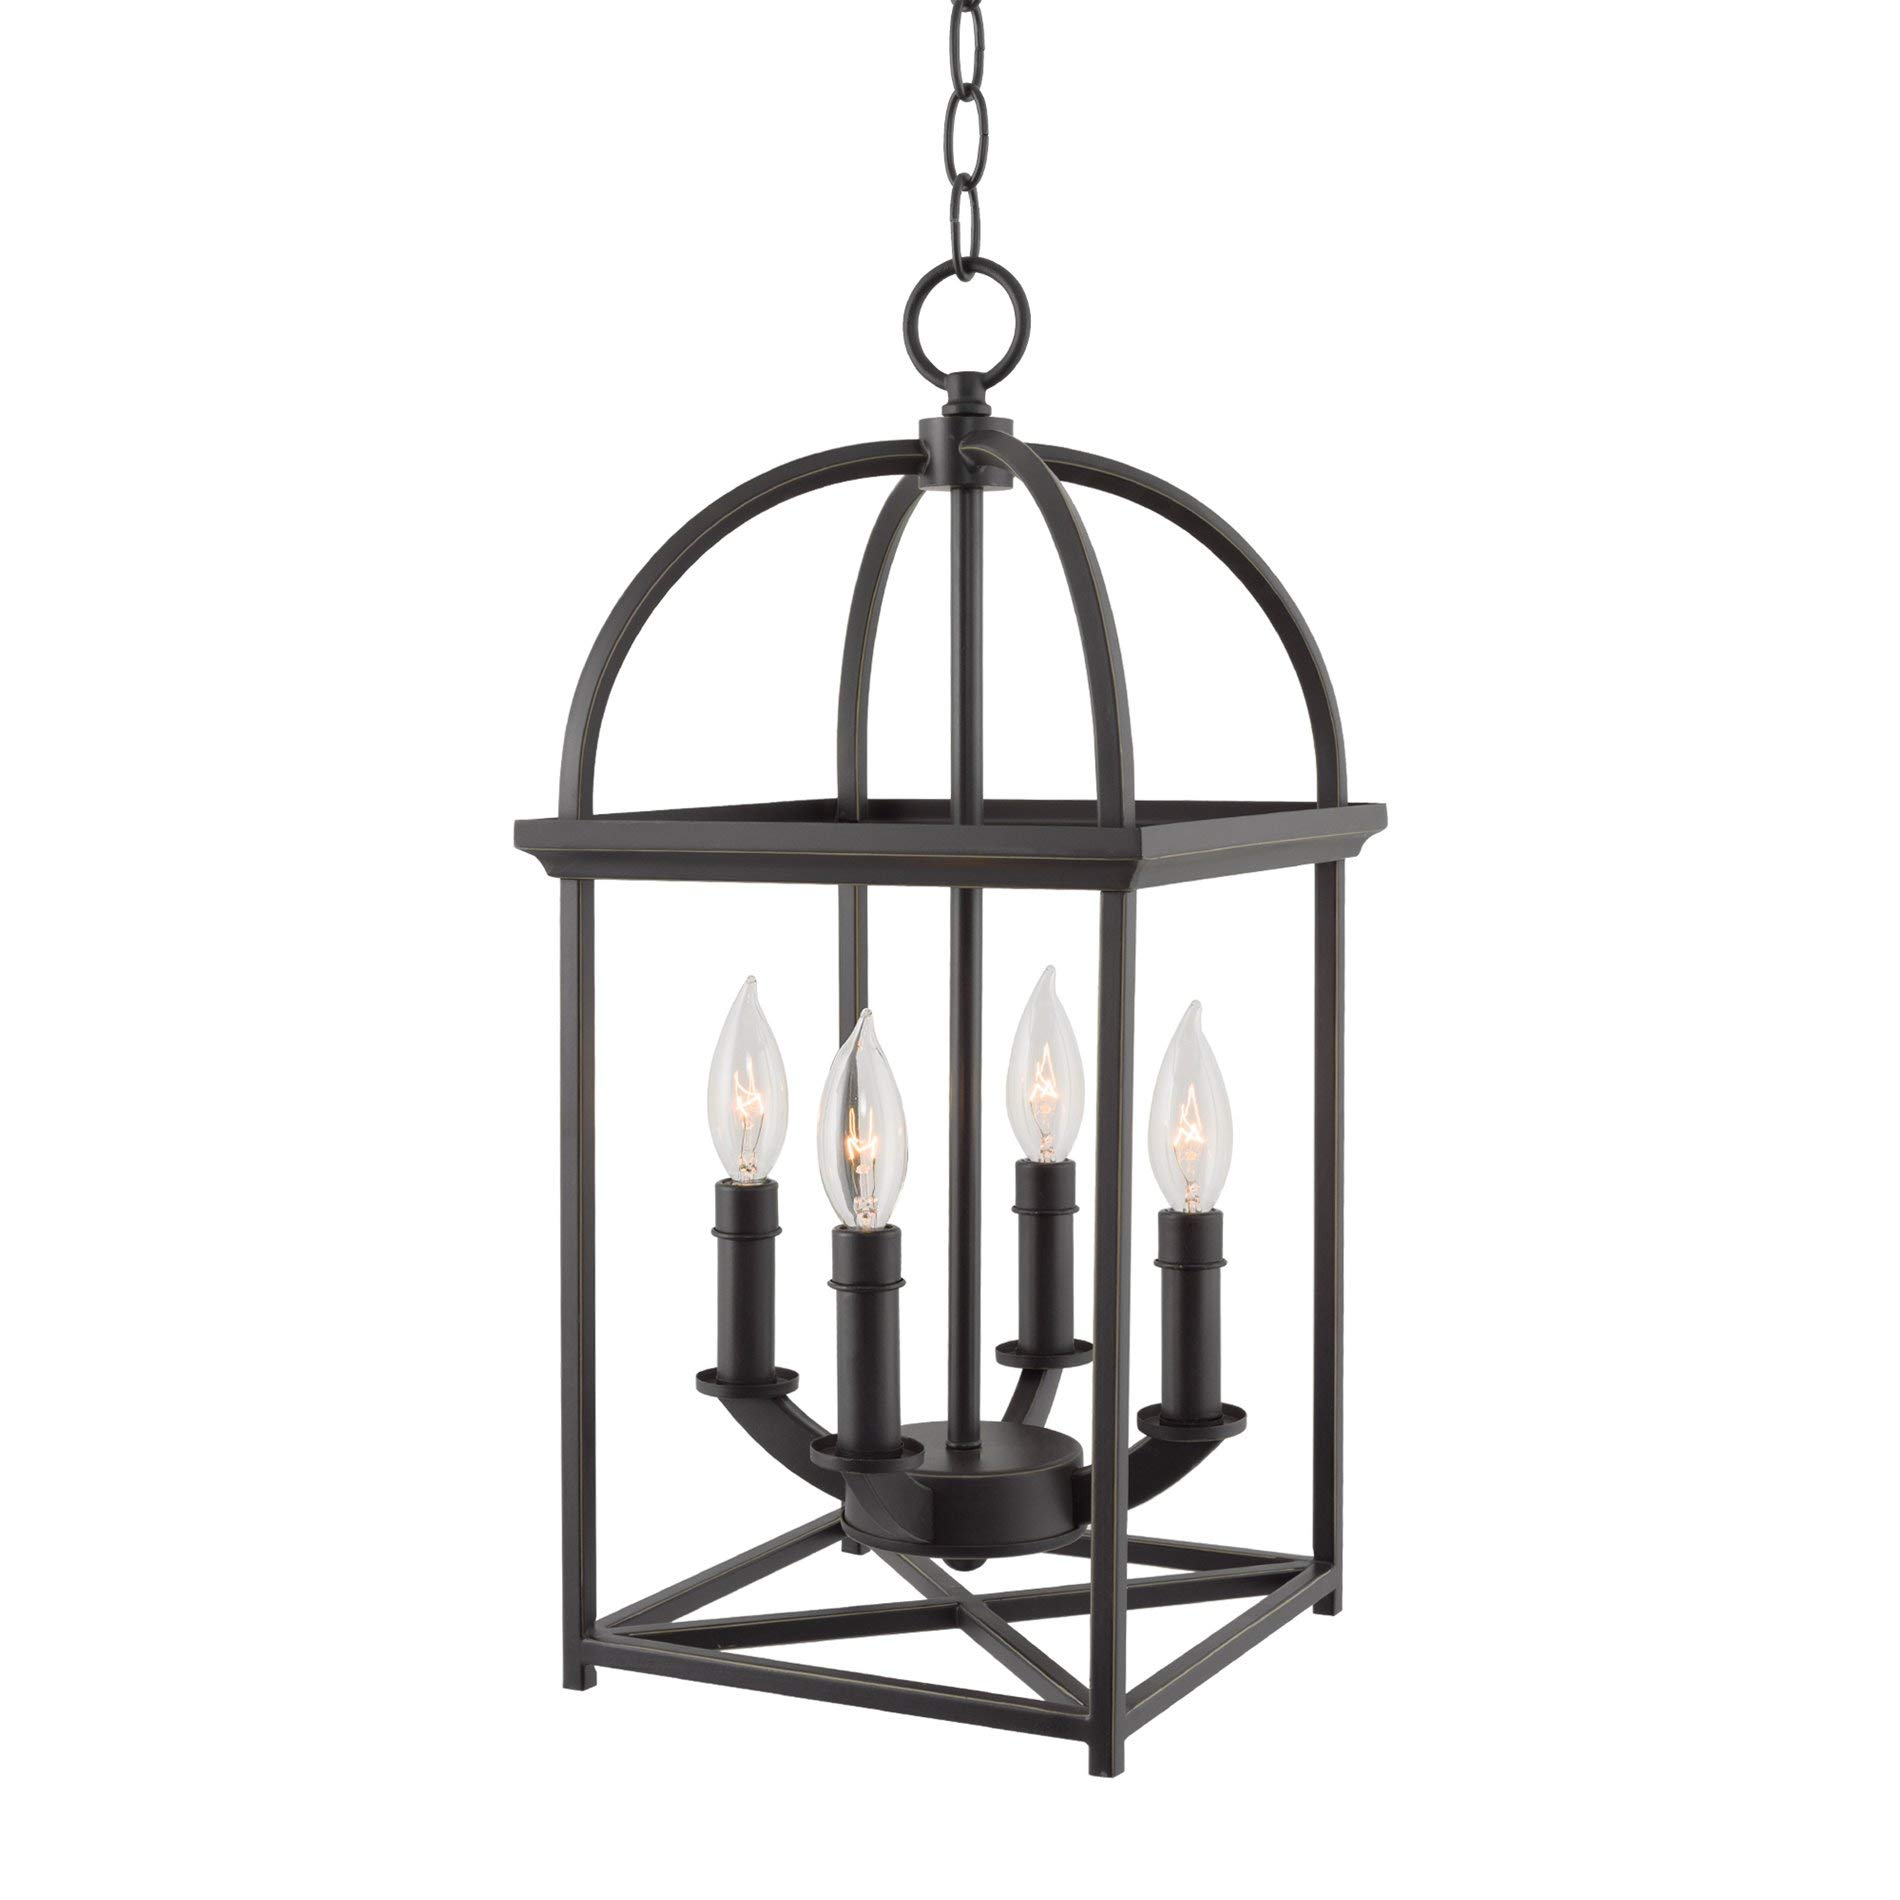 Kira Home Amesbury 21'' Foyer Bird Cage Lantern 4-Light Chandelier, Oil Rubbed Bronze Finish with Hand-Painted Gold Trim